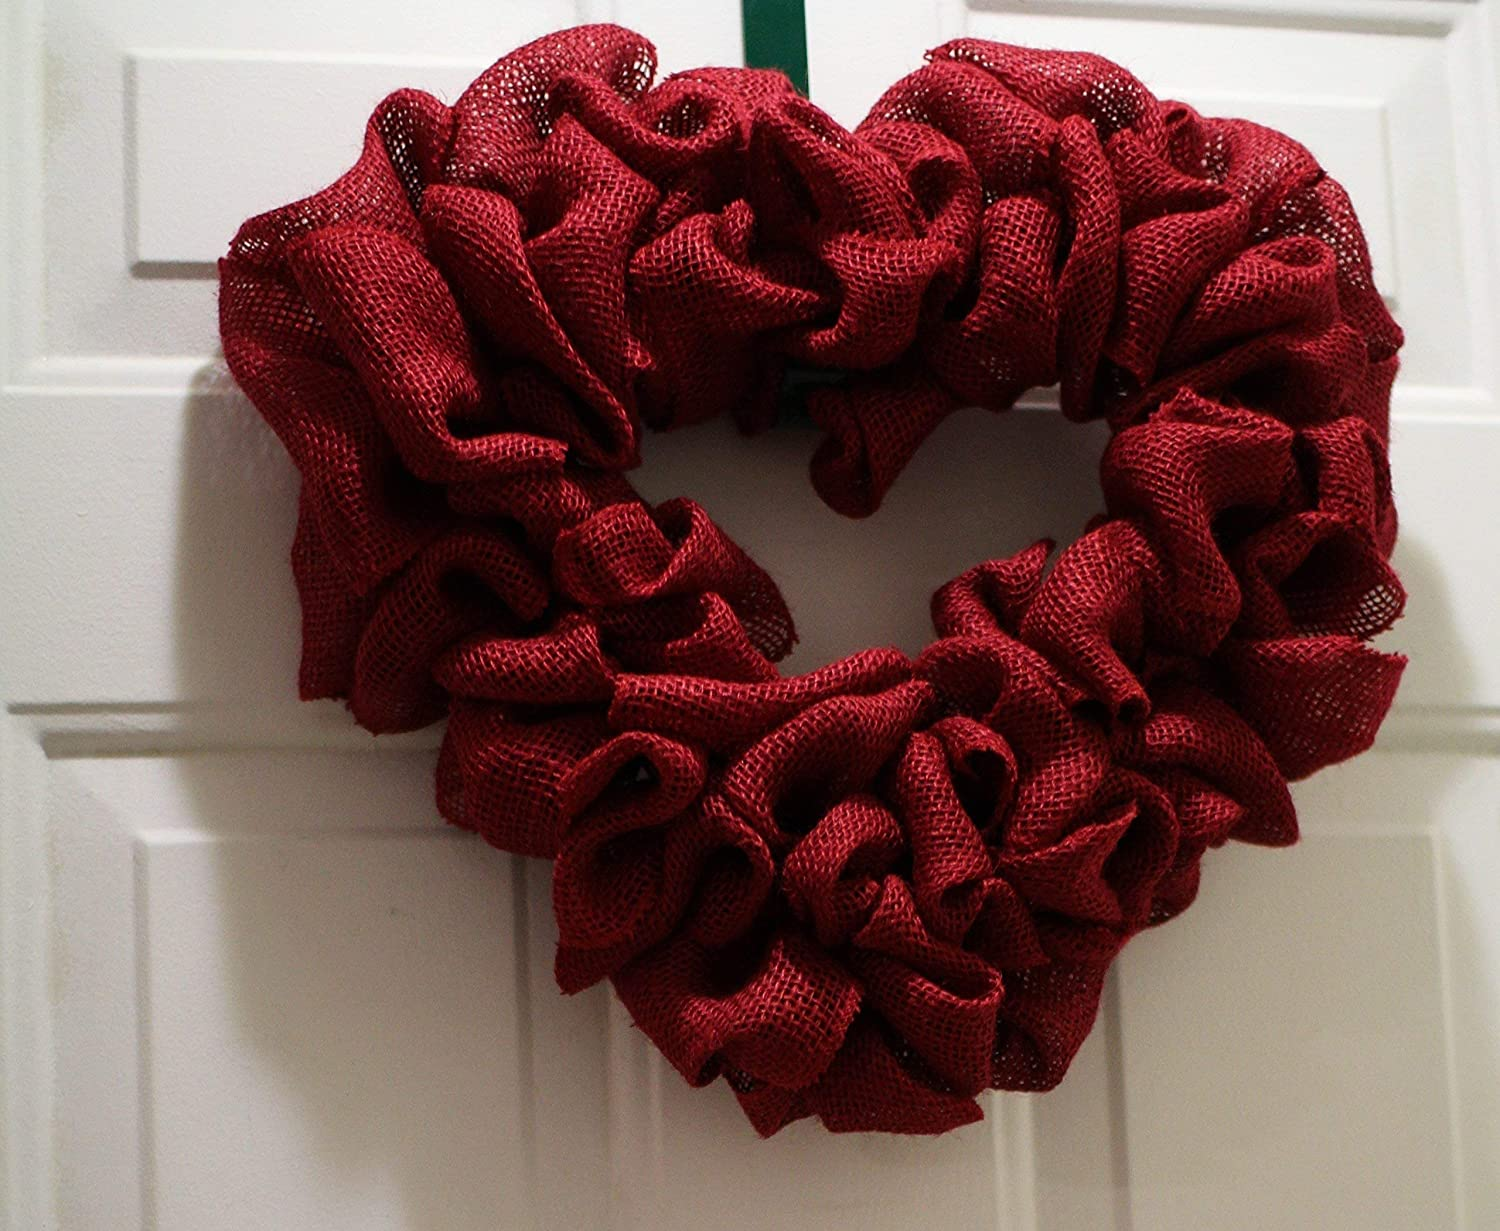 Valentines Day Door Wreath 20 Burlap Red Hearts Full Burlap Wreath Primitive Valentines Day Decor Hearts Decor READY TO SHIP